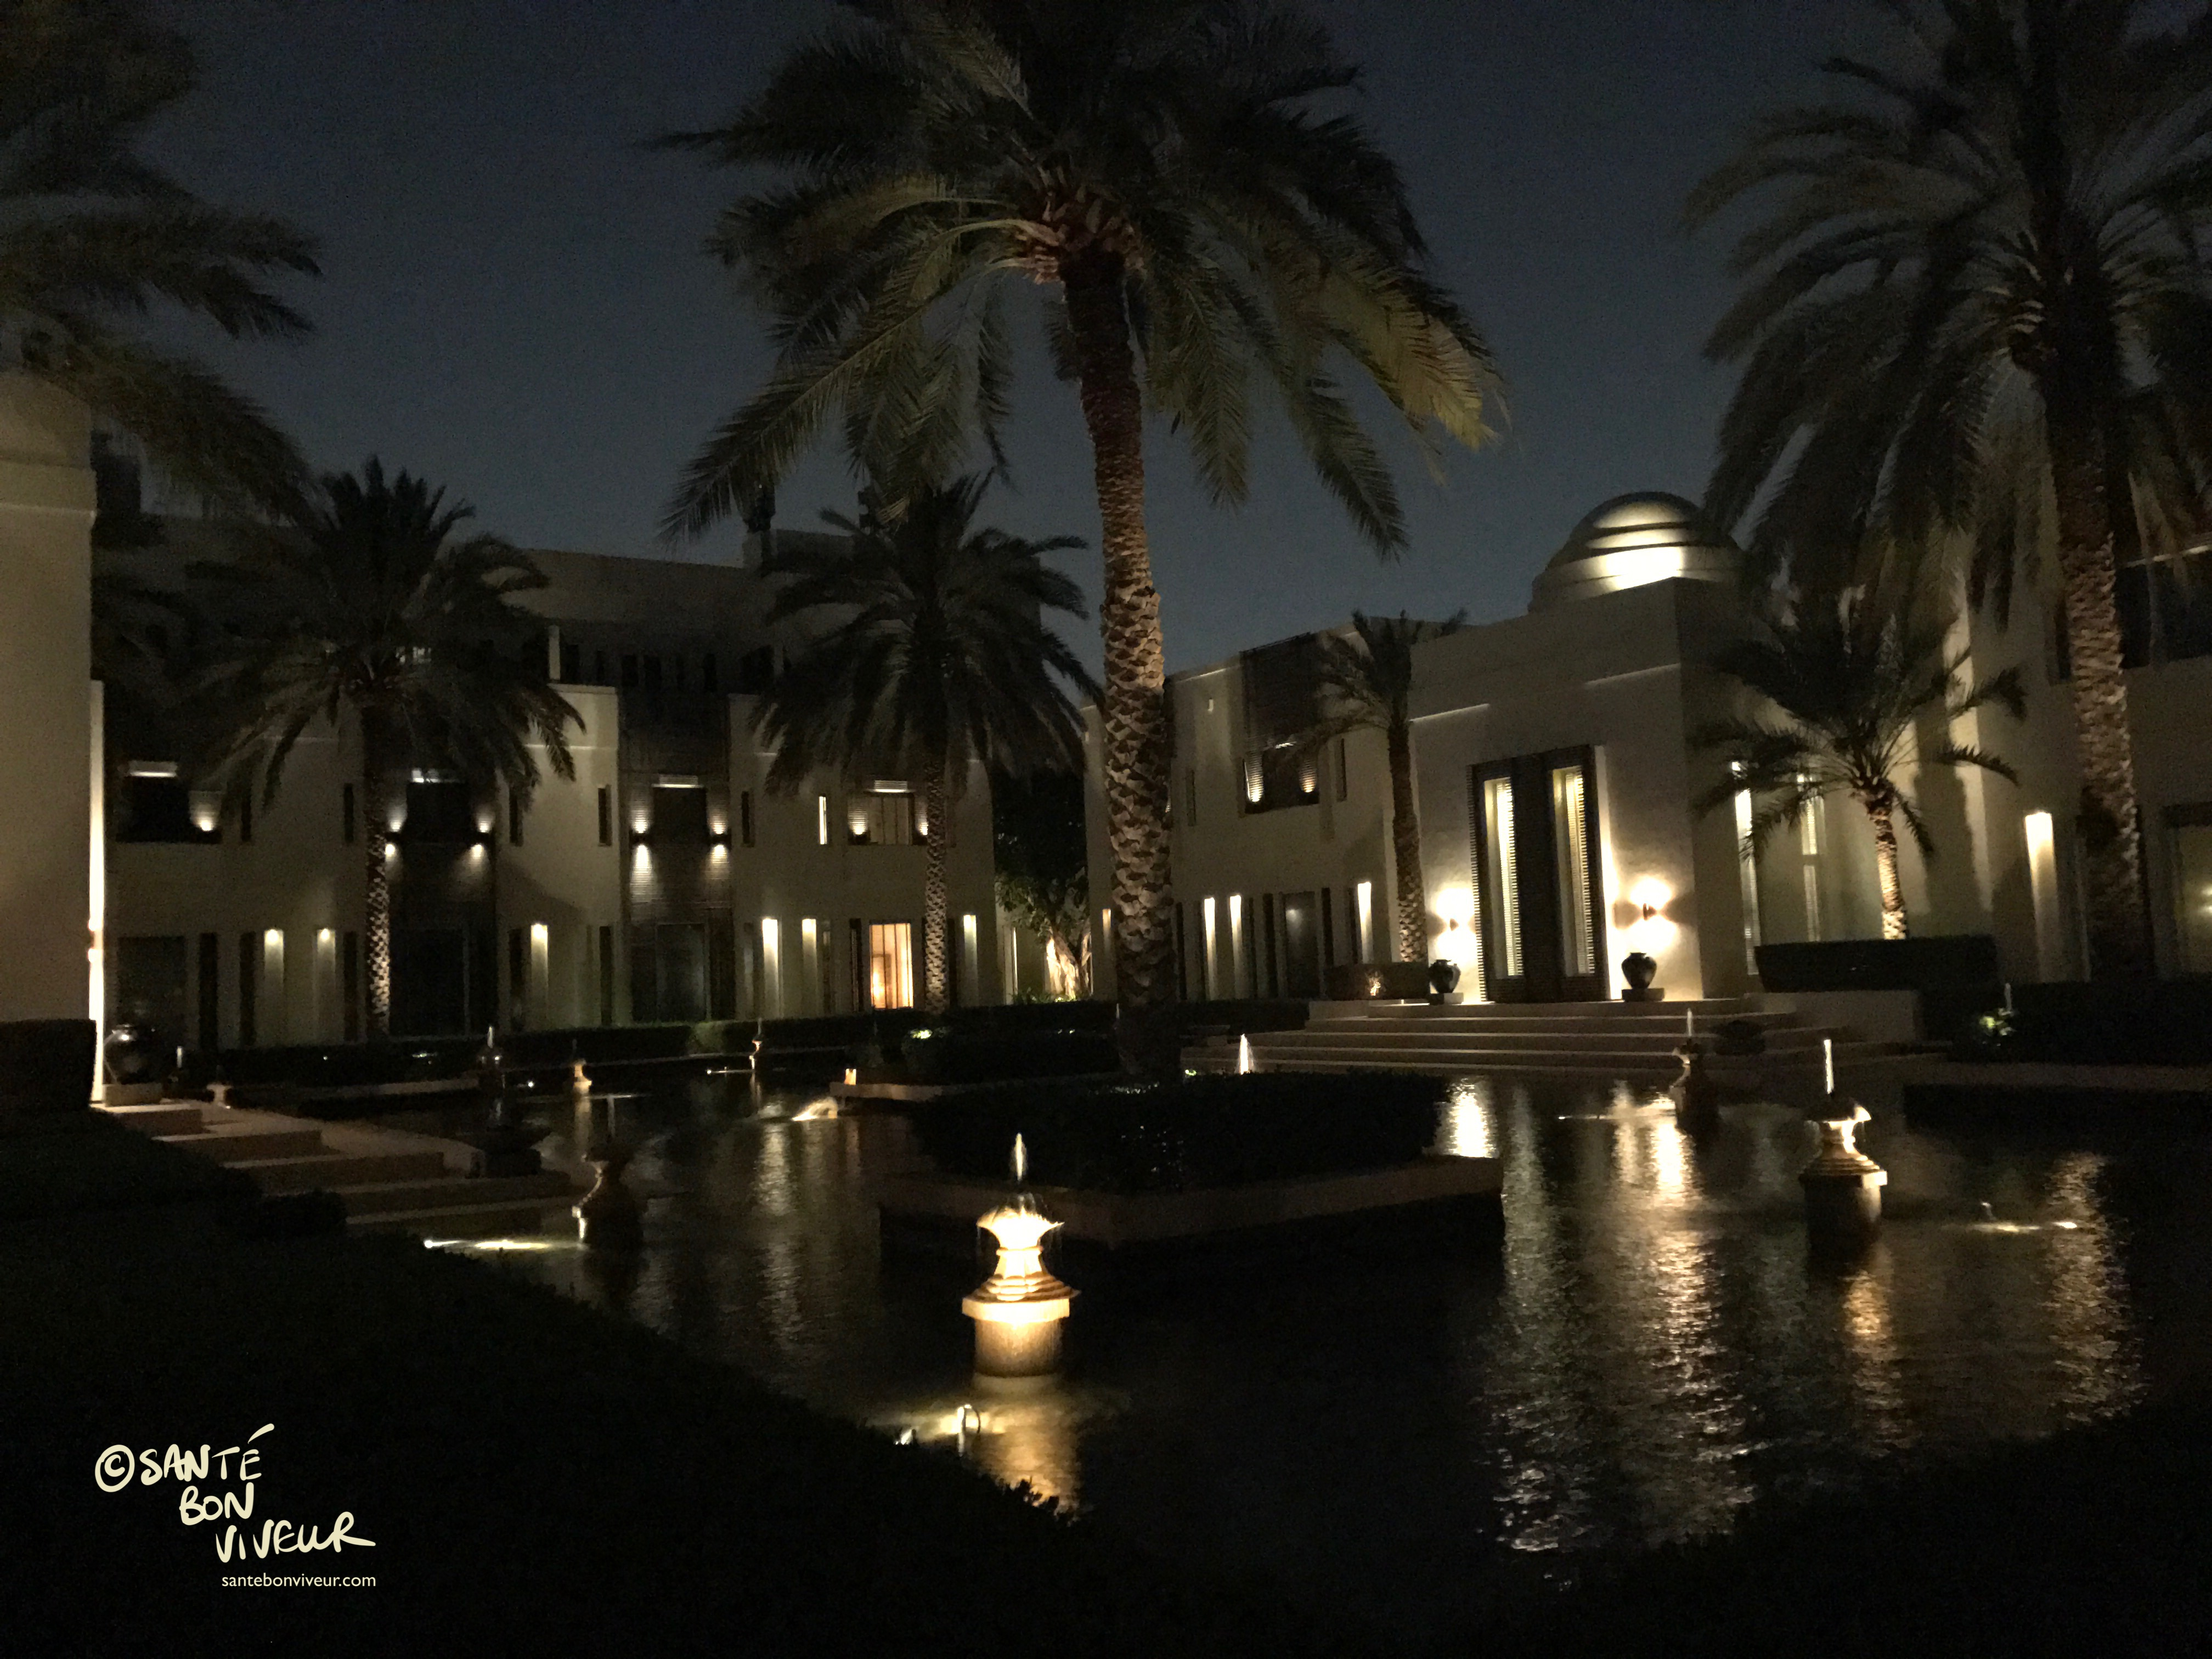 Chedi Hotel grounds at night